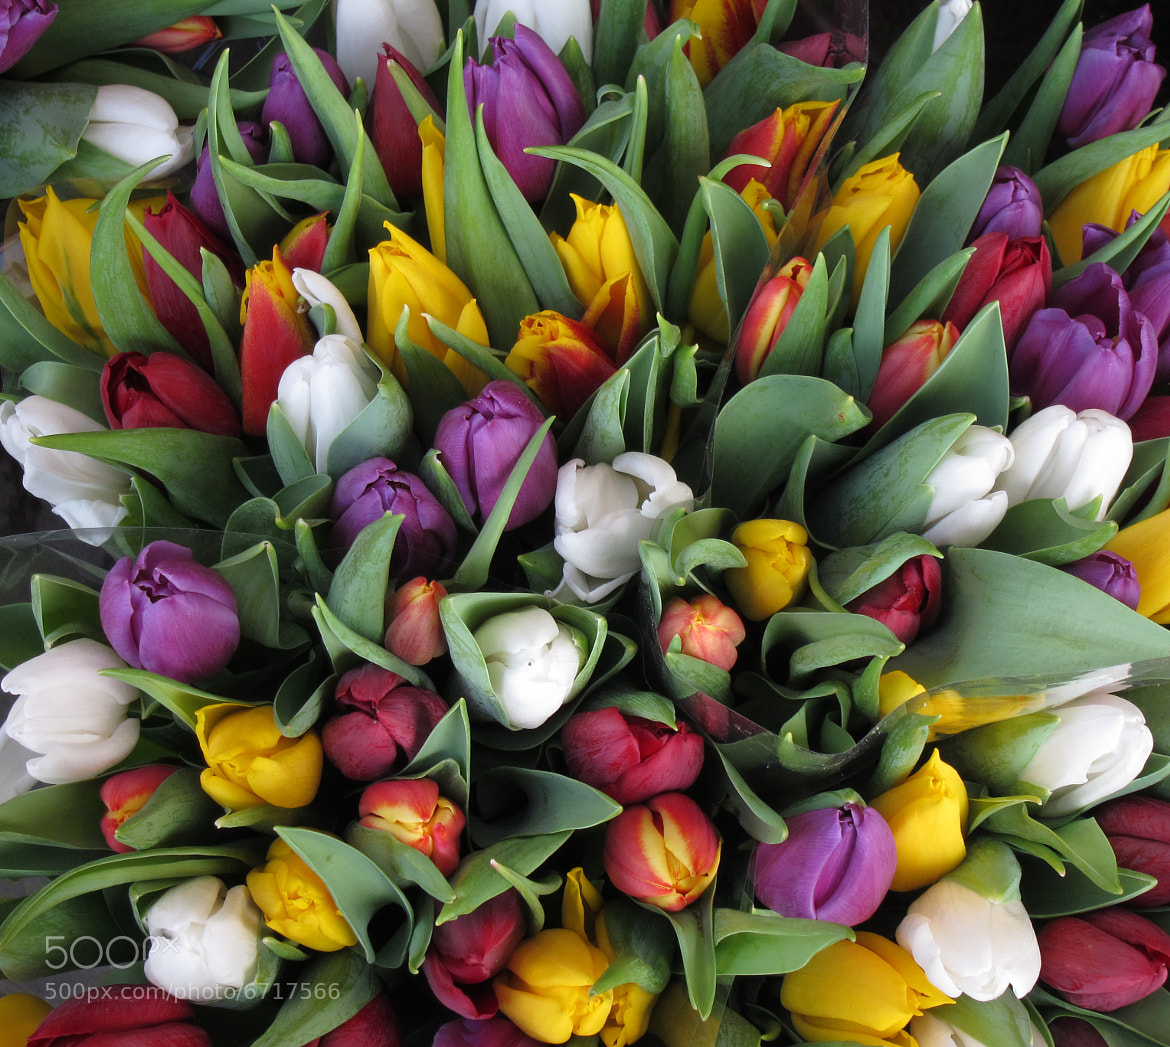 Photograph Tulips For Sale by Robert Williams on 500px